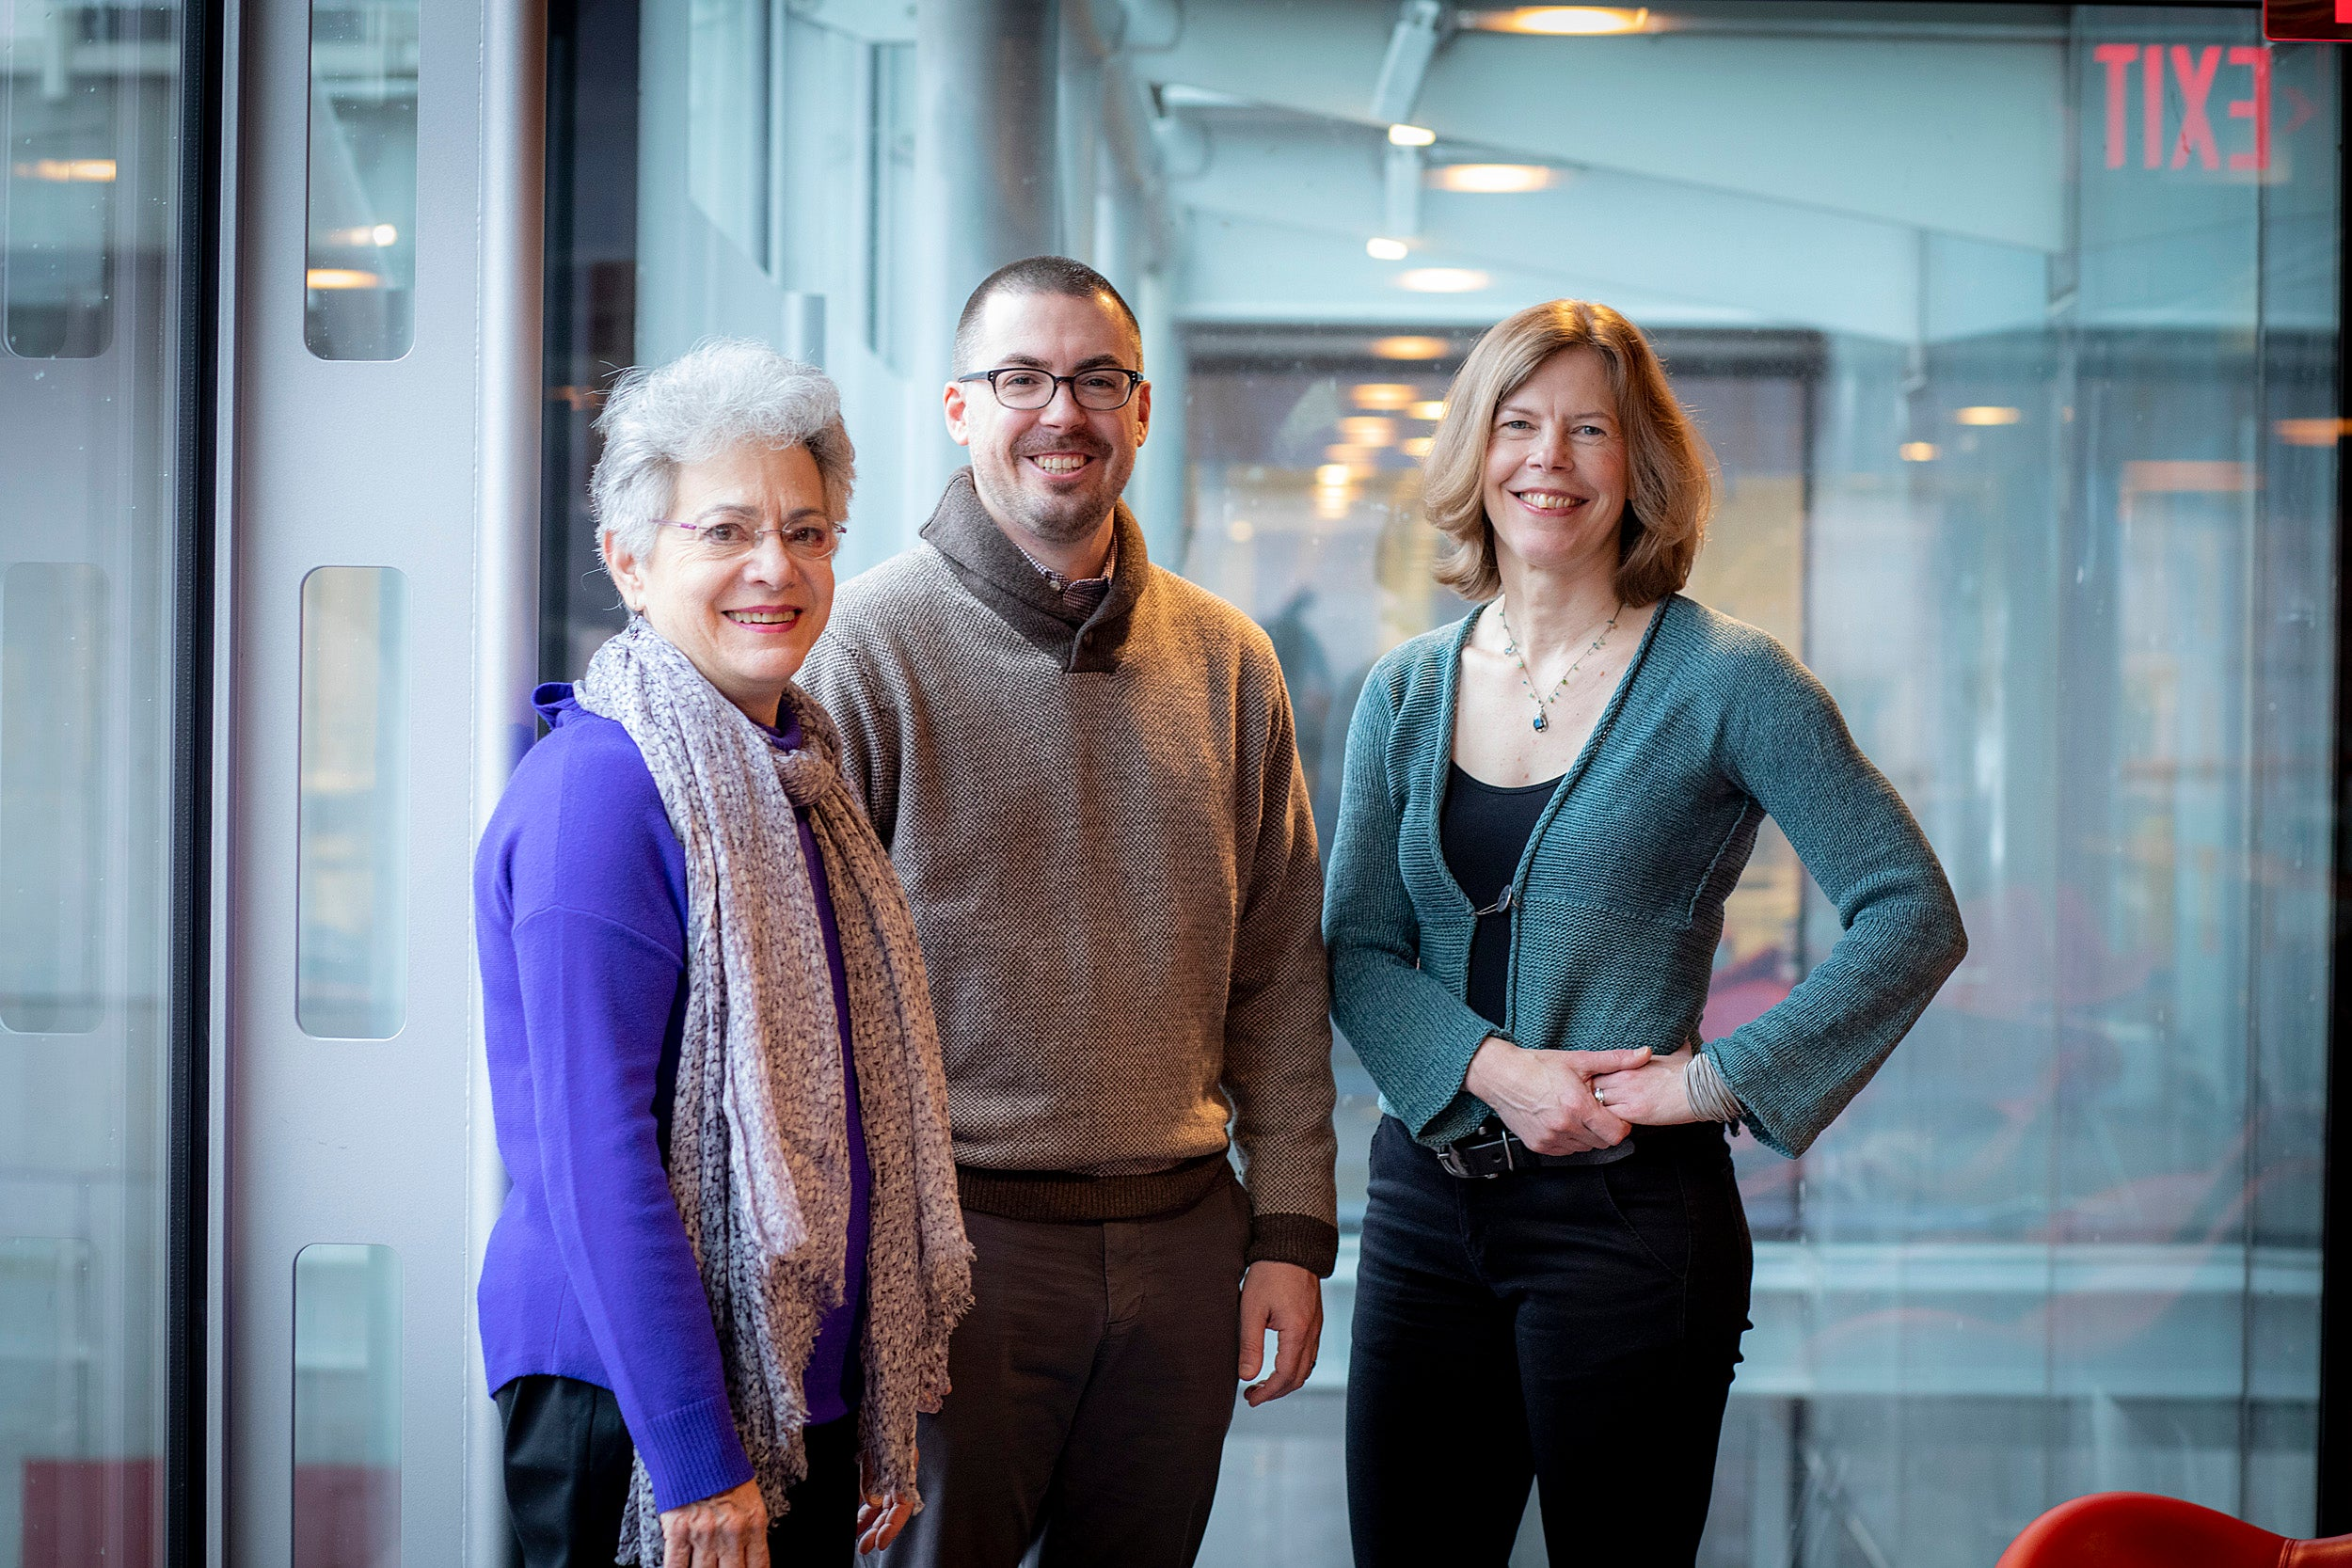 Barbara Grosz (from left), Jeff Behrend, and Allison Simmons